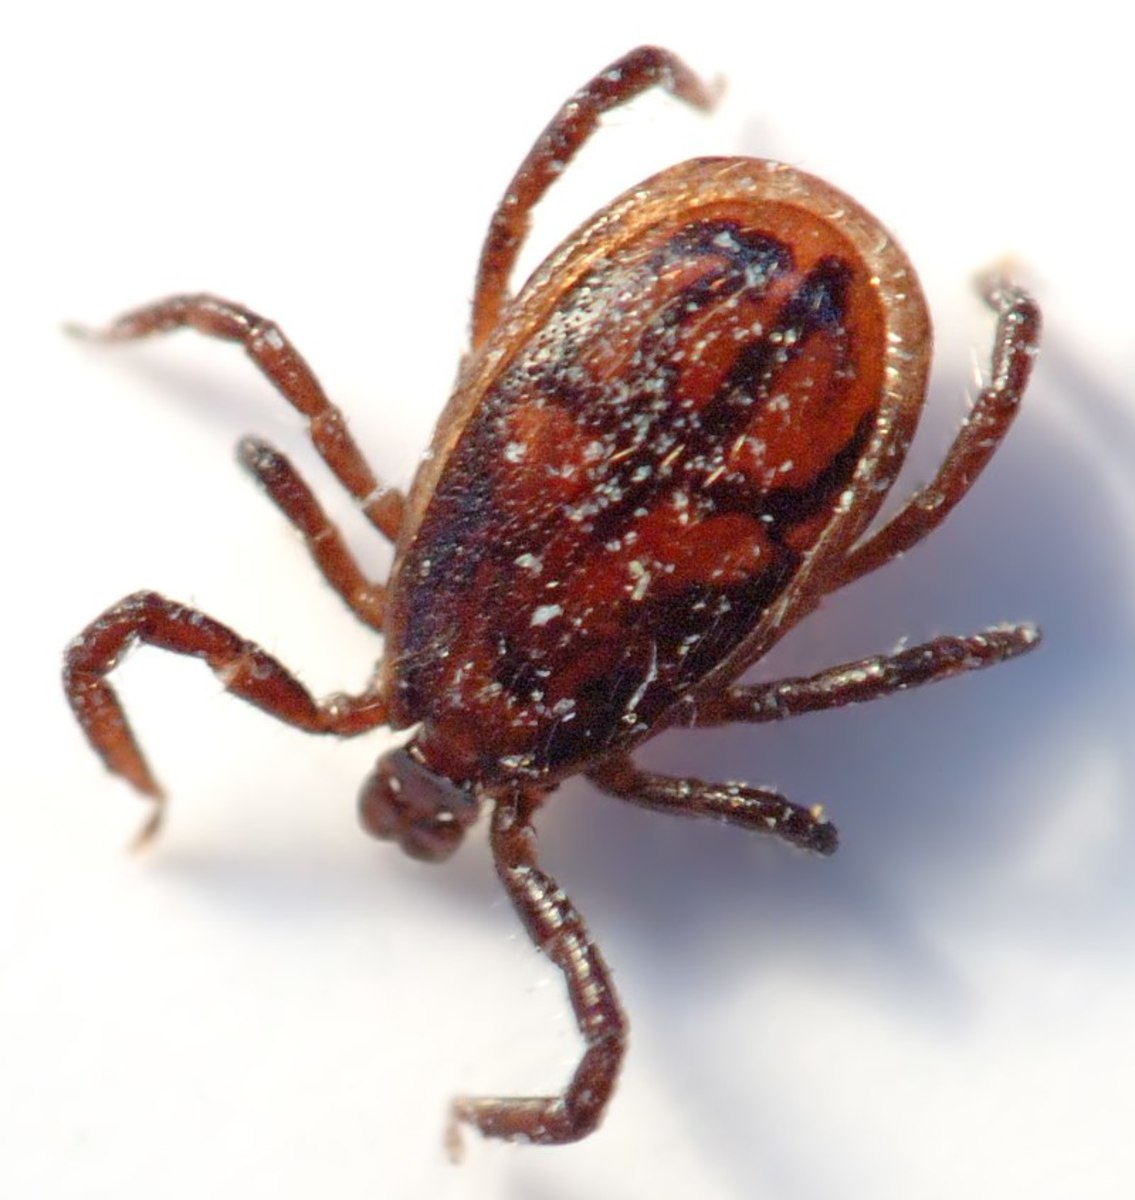 Notice This  2 mm Small Adult Tick.